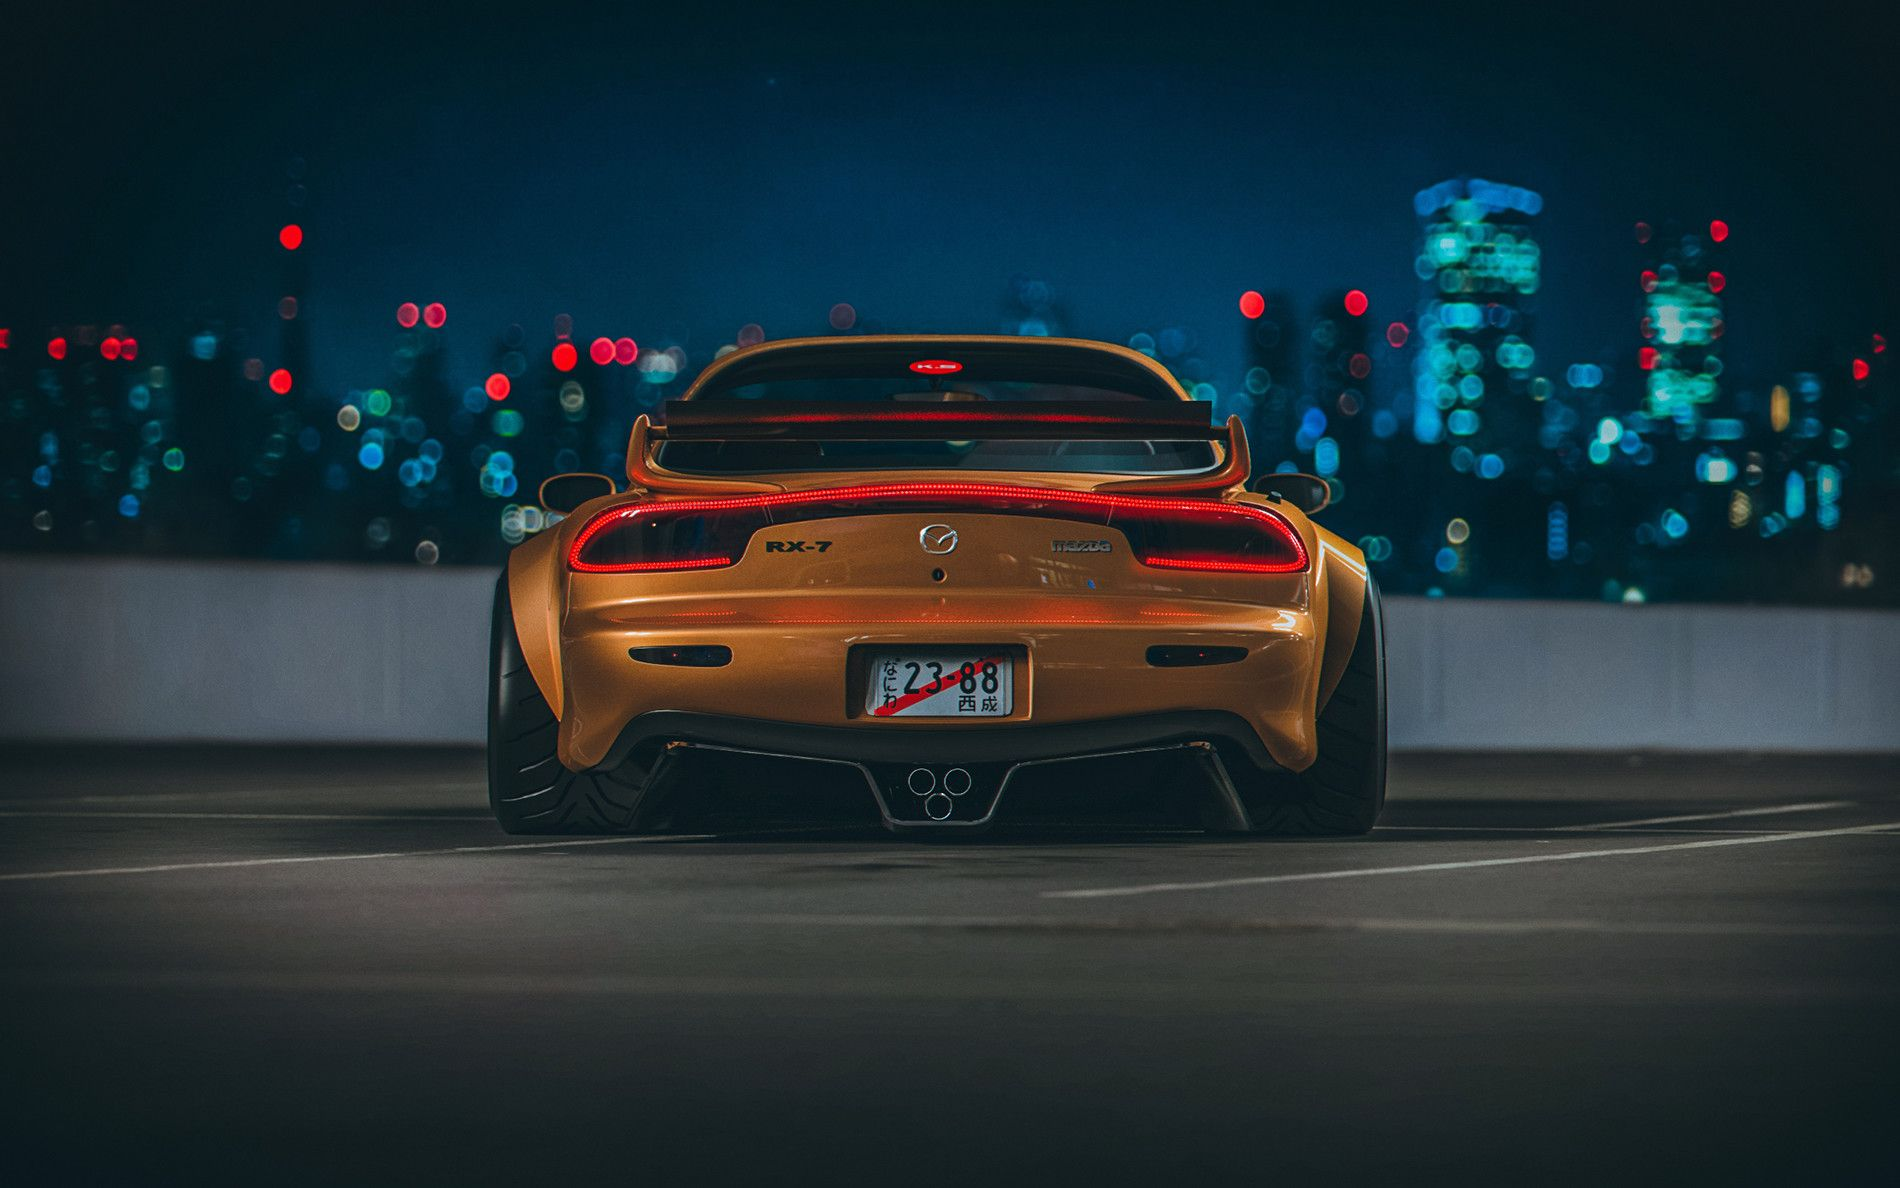 Mazda Rx 7 Wallpapers Top Free Mazda Rx 7 Backgrounds Wallpaperaccess